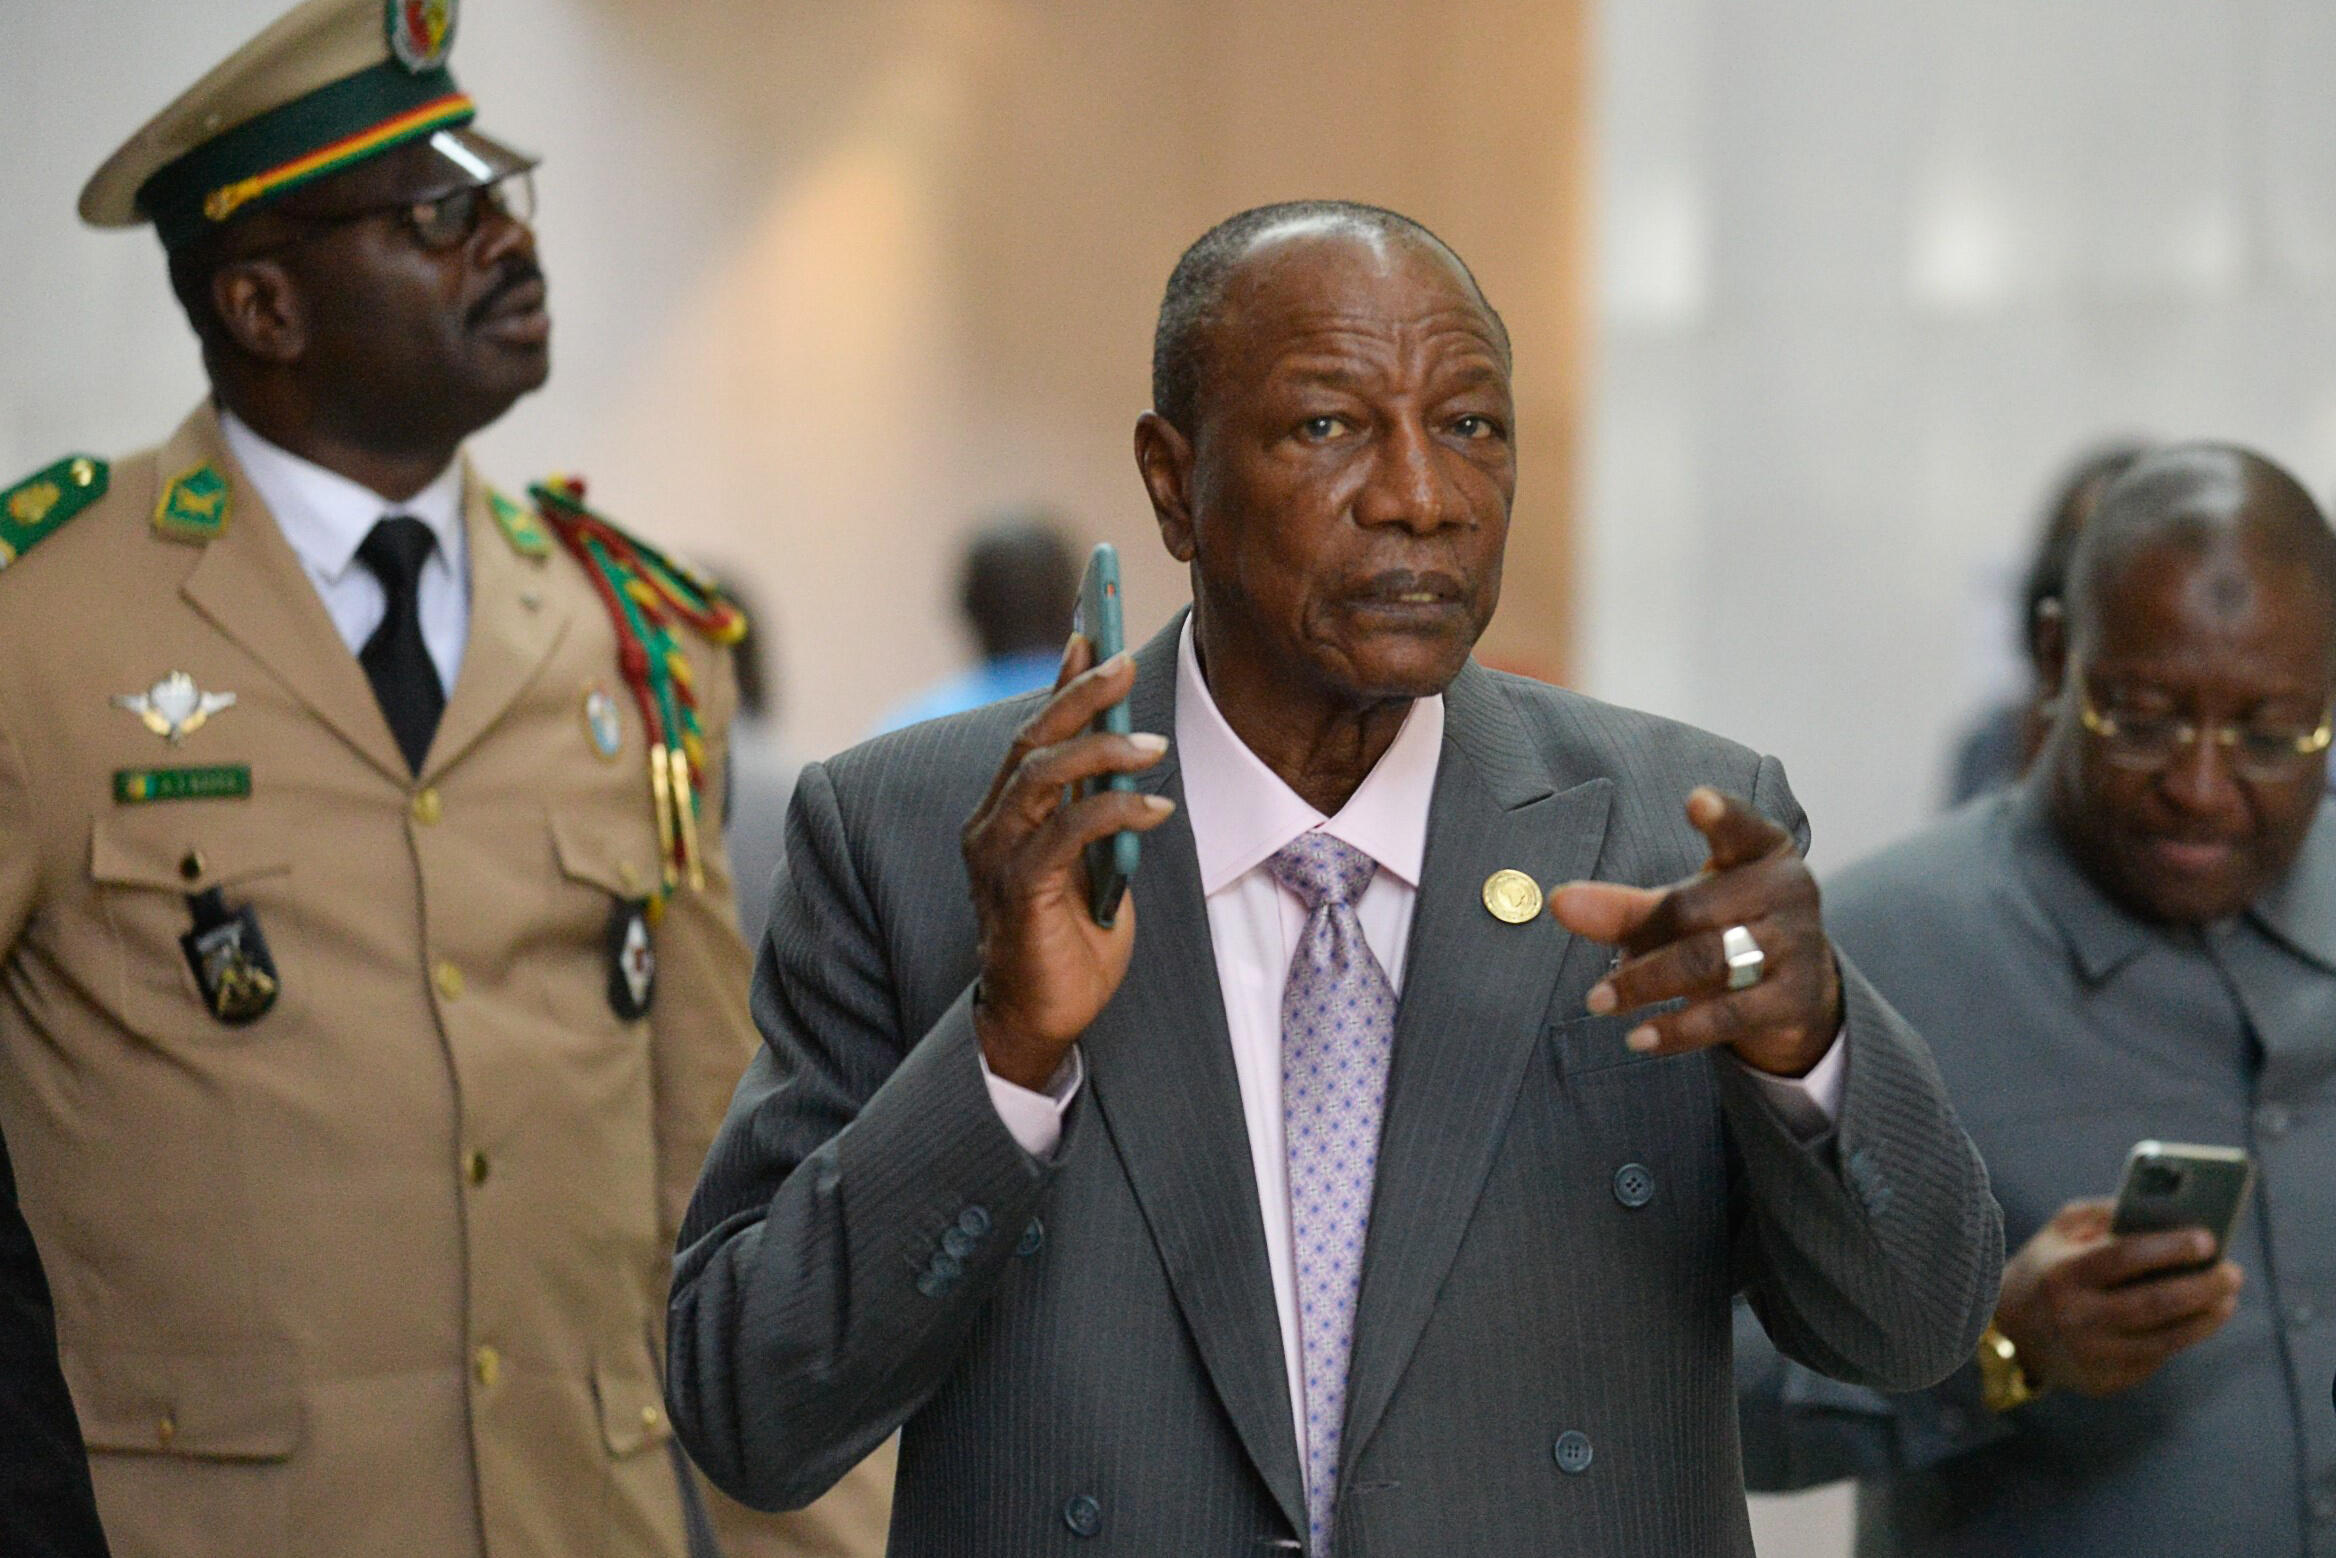 Guinea's President Alpha Conde (center) arrives at the African Union headquarters in Addis Ababa in February 2020 amid opposition at home to a referendum that could extend his rule